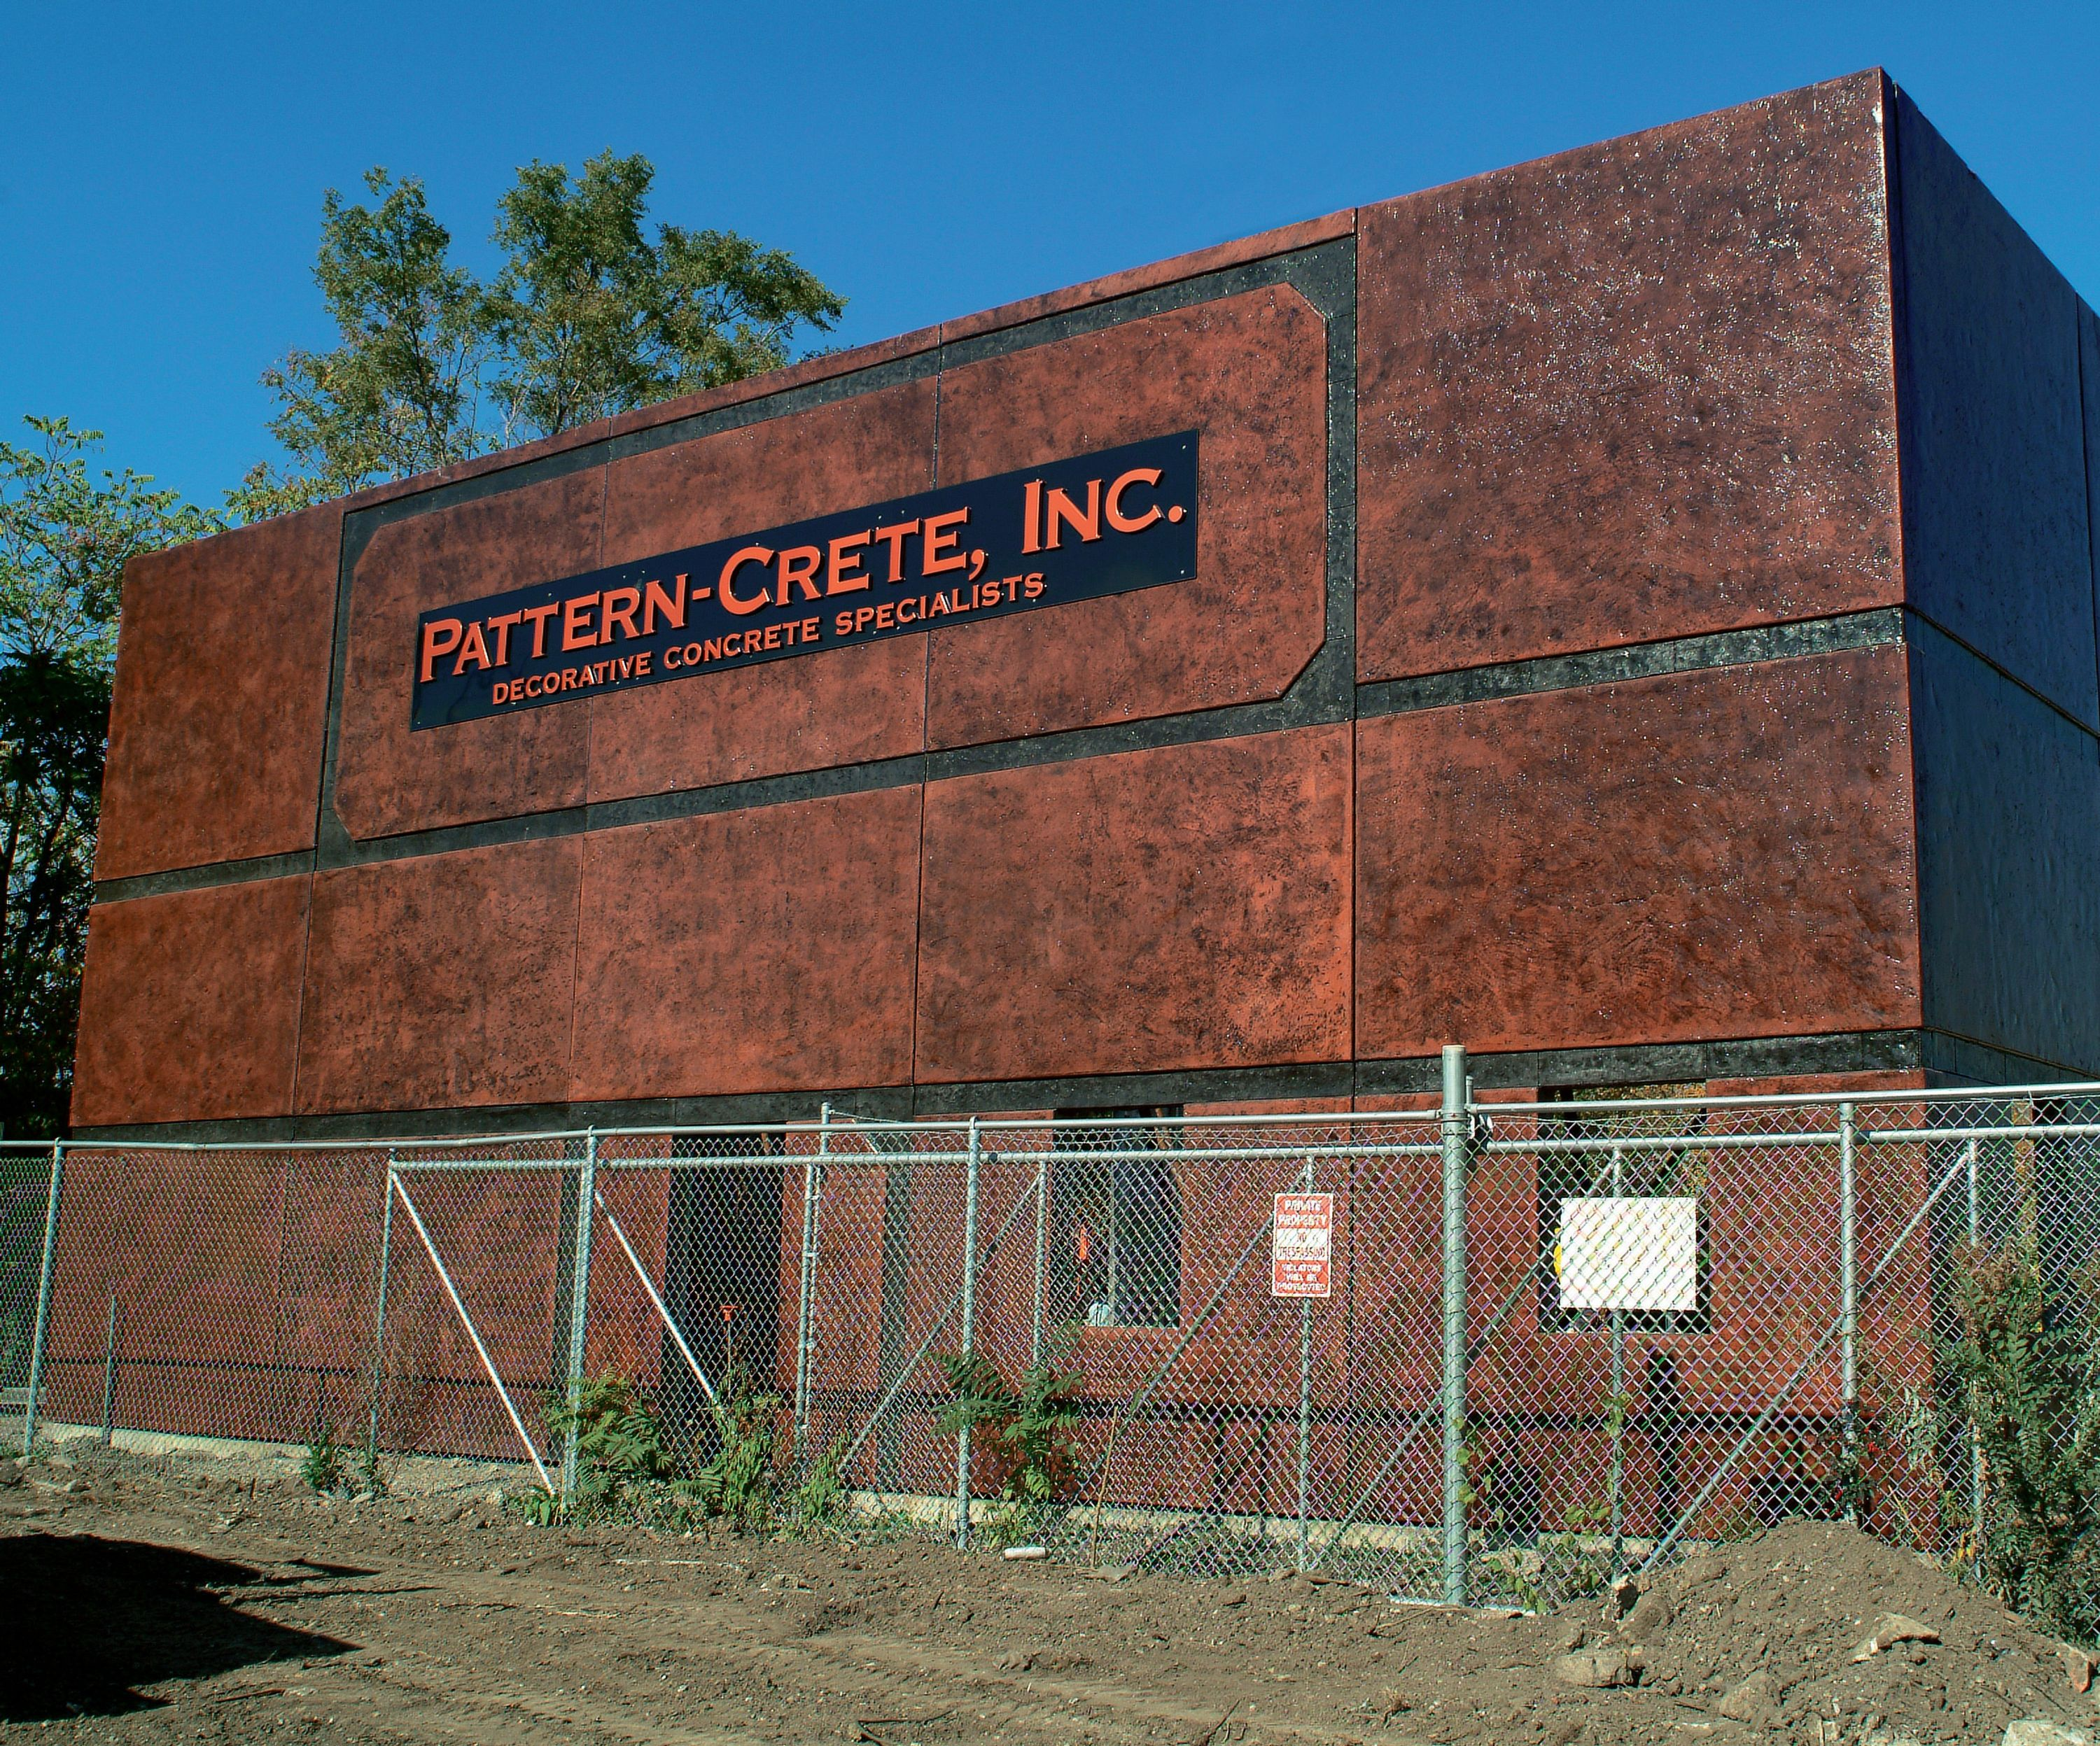 Pattern-Crete Warehouse and Shop - He wanted to use tilt-up construction, but didn't have the space to cast all the panels at once. That raised the question — would he be able to make the colors match with batches poured a month apart?